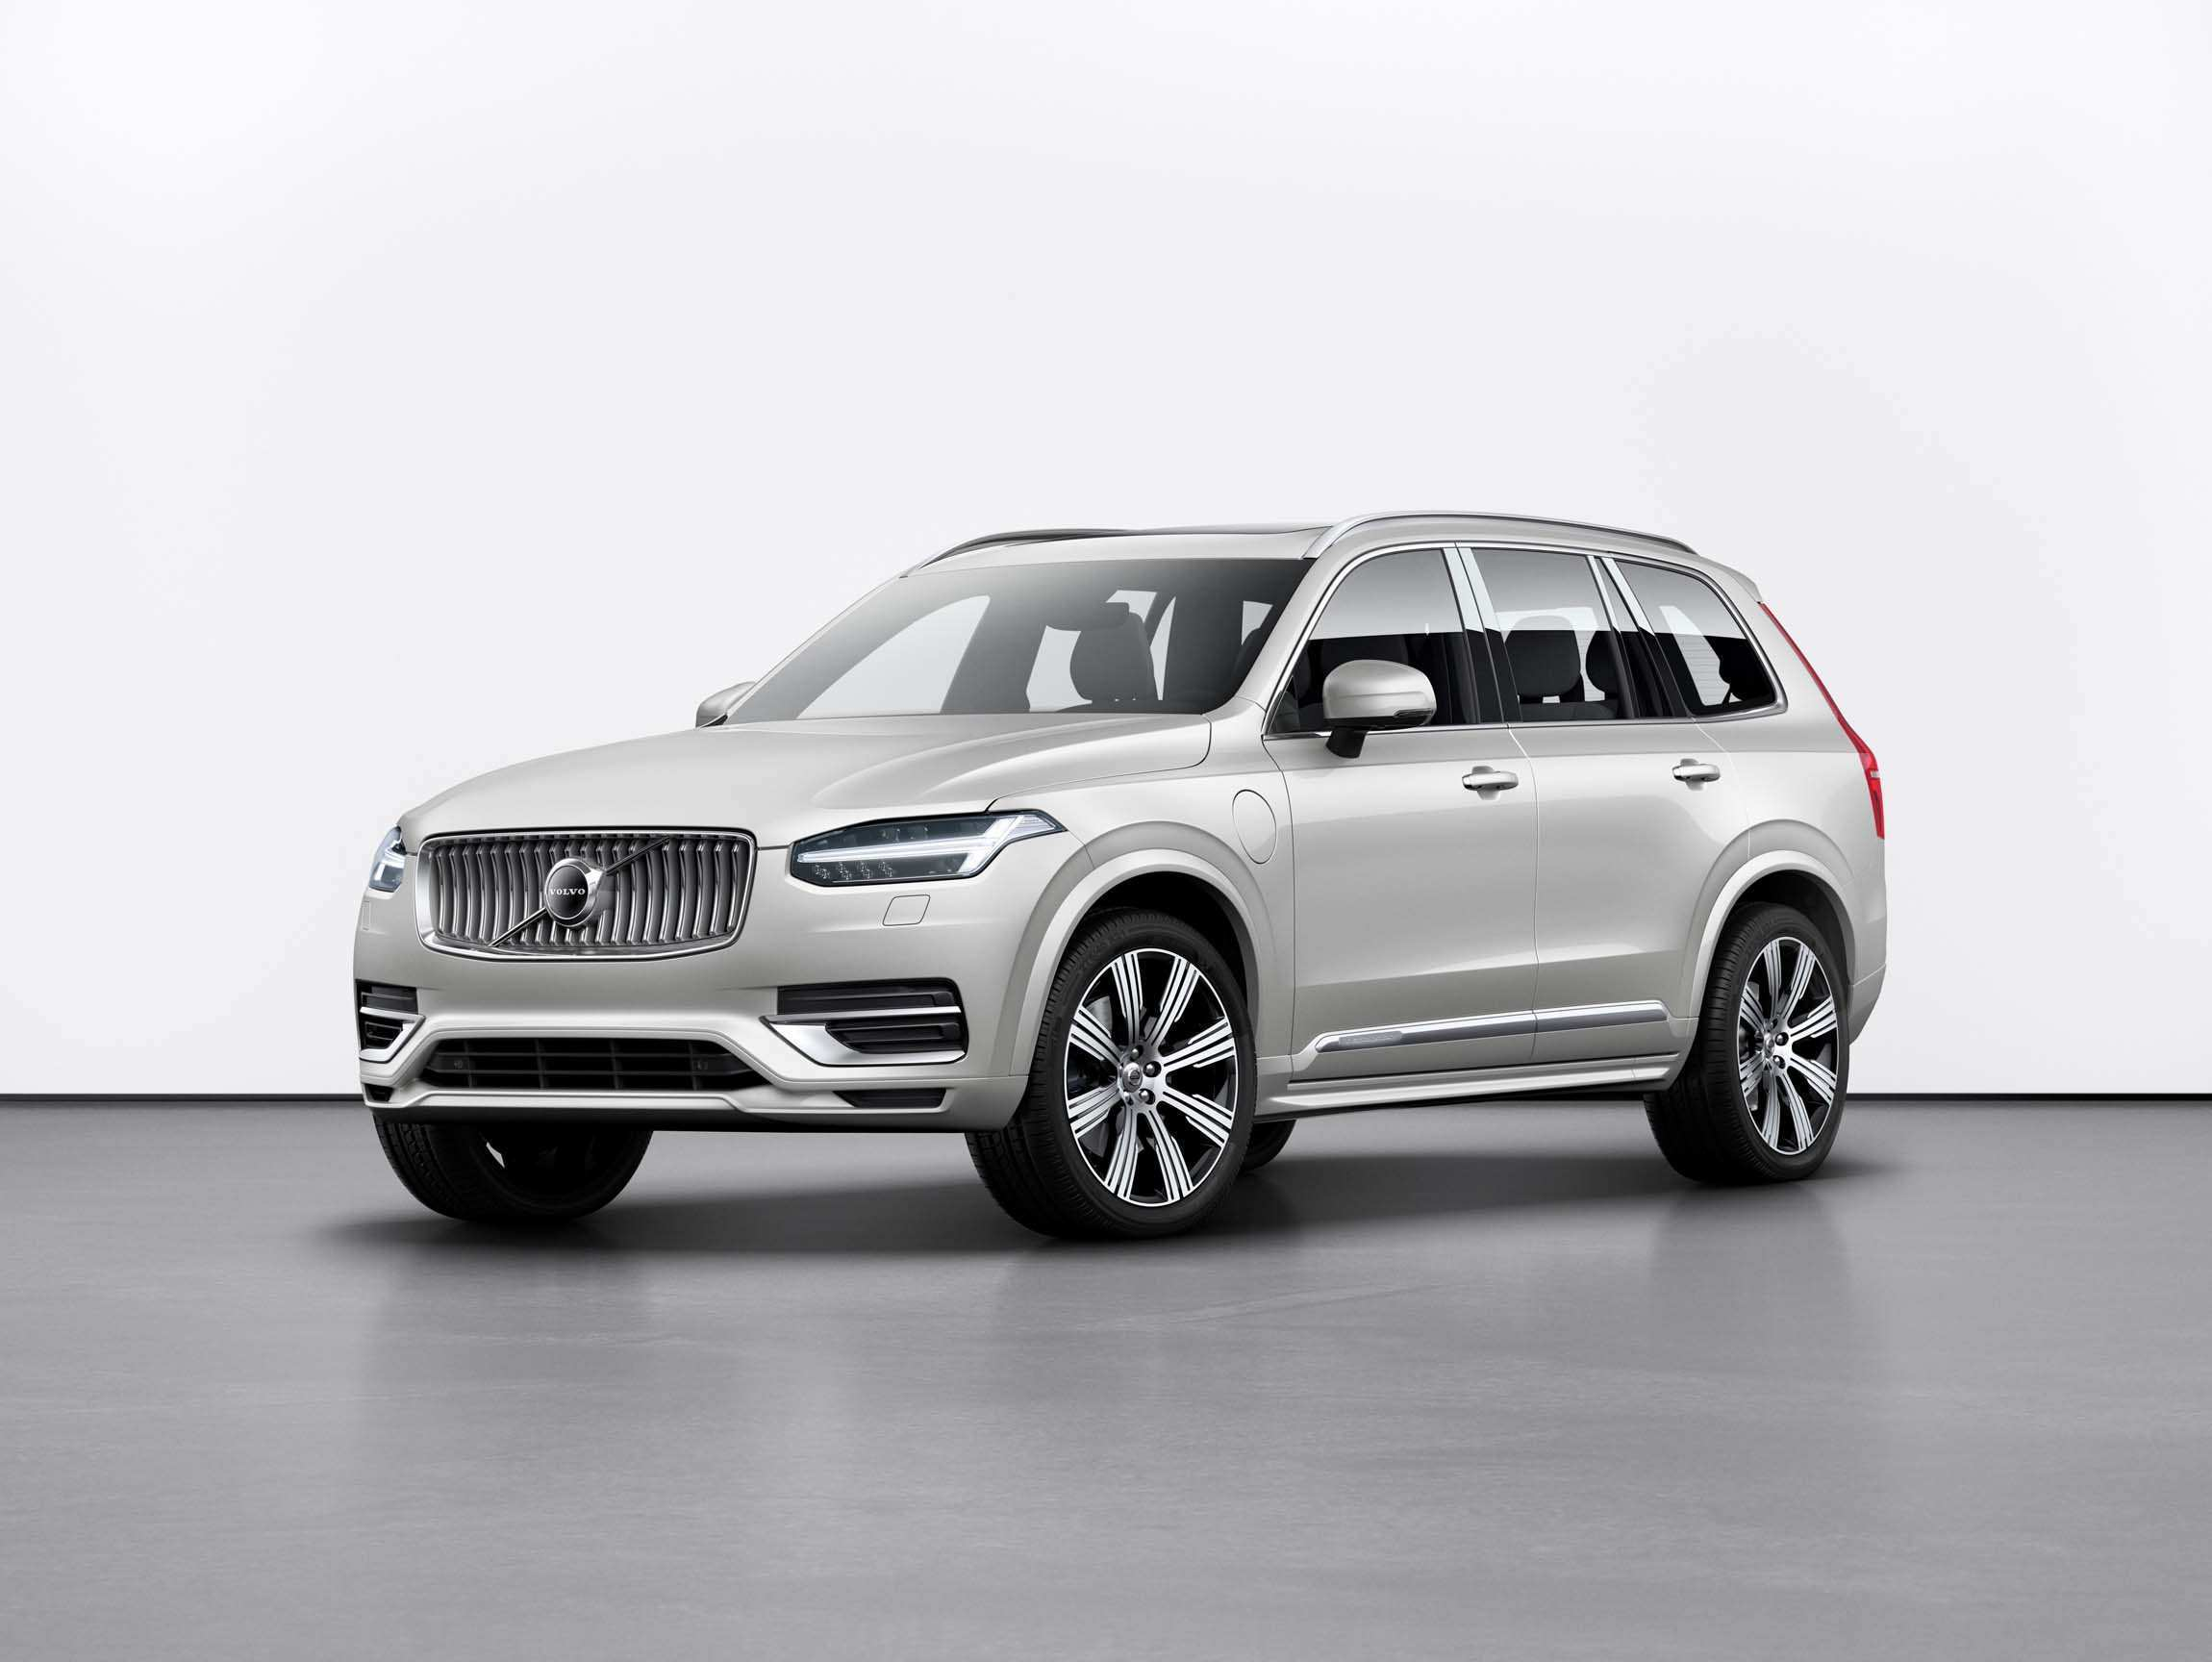 83 The 2020 Volvo XC60 Rumors